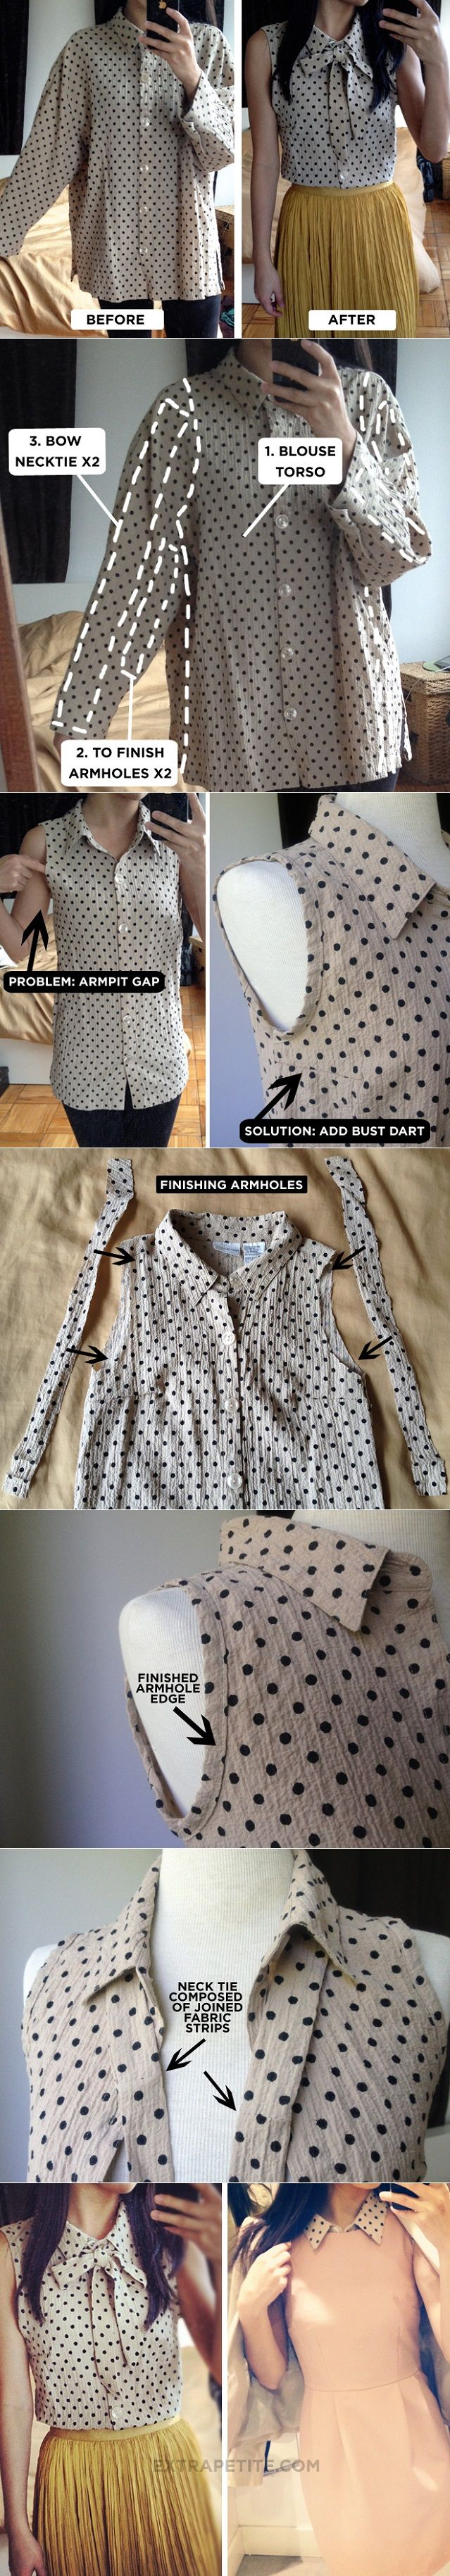 Turn a Large Old Shirt into a Chic Blouse - DIY  If I only I could sew...